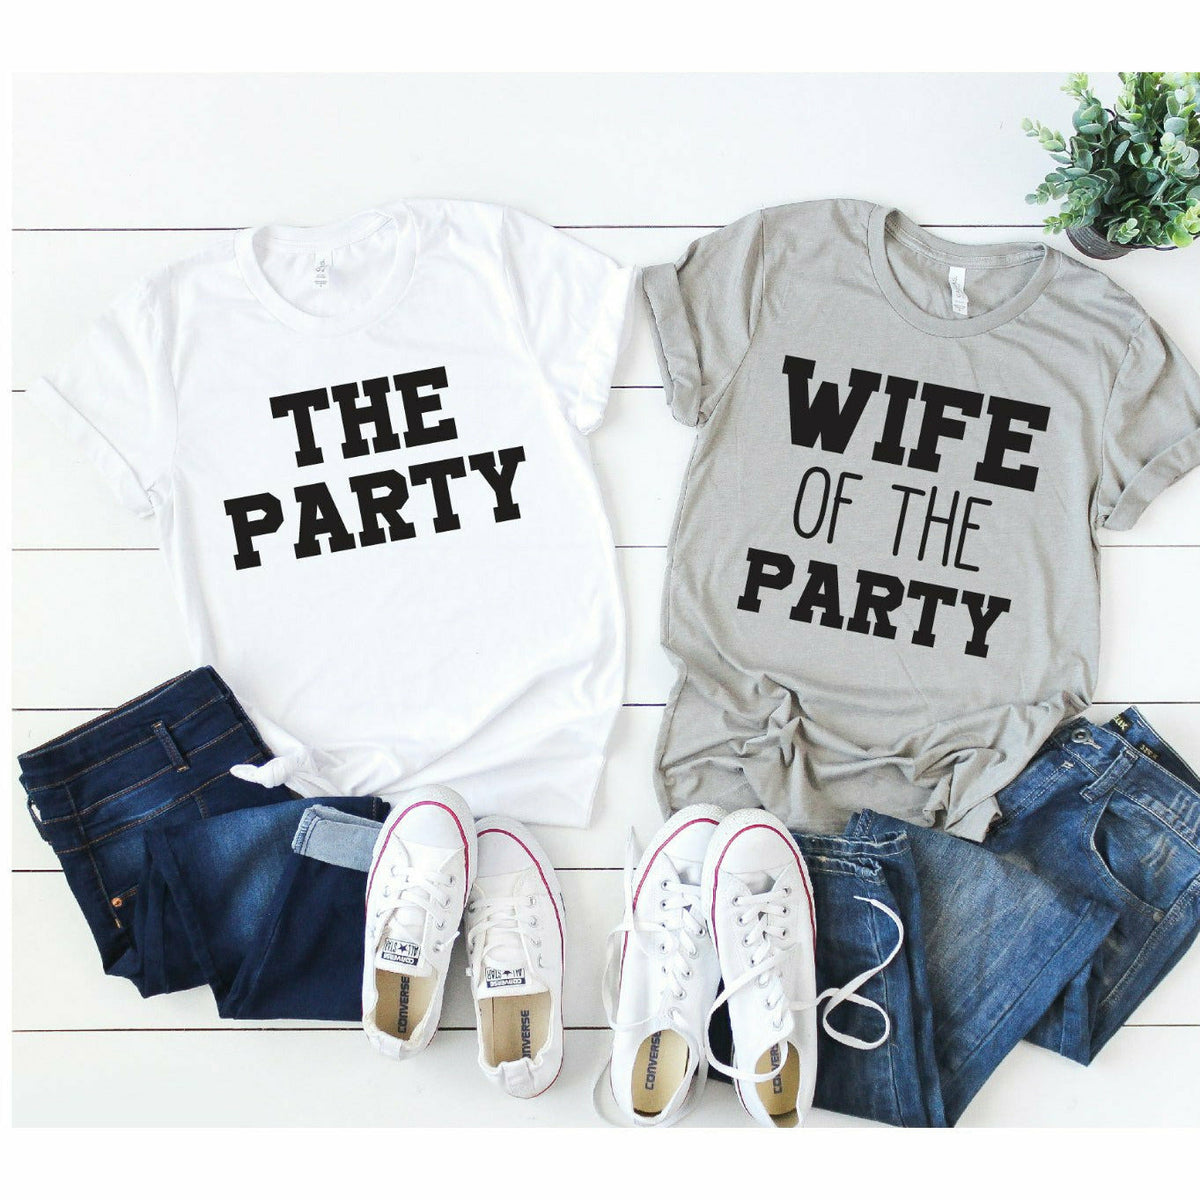 Wife of the party or party tee